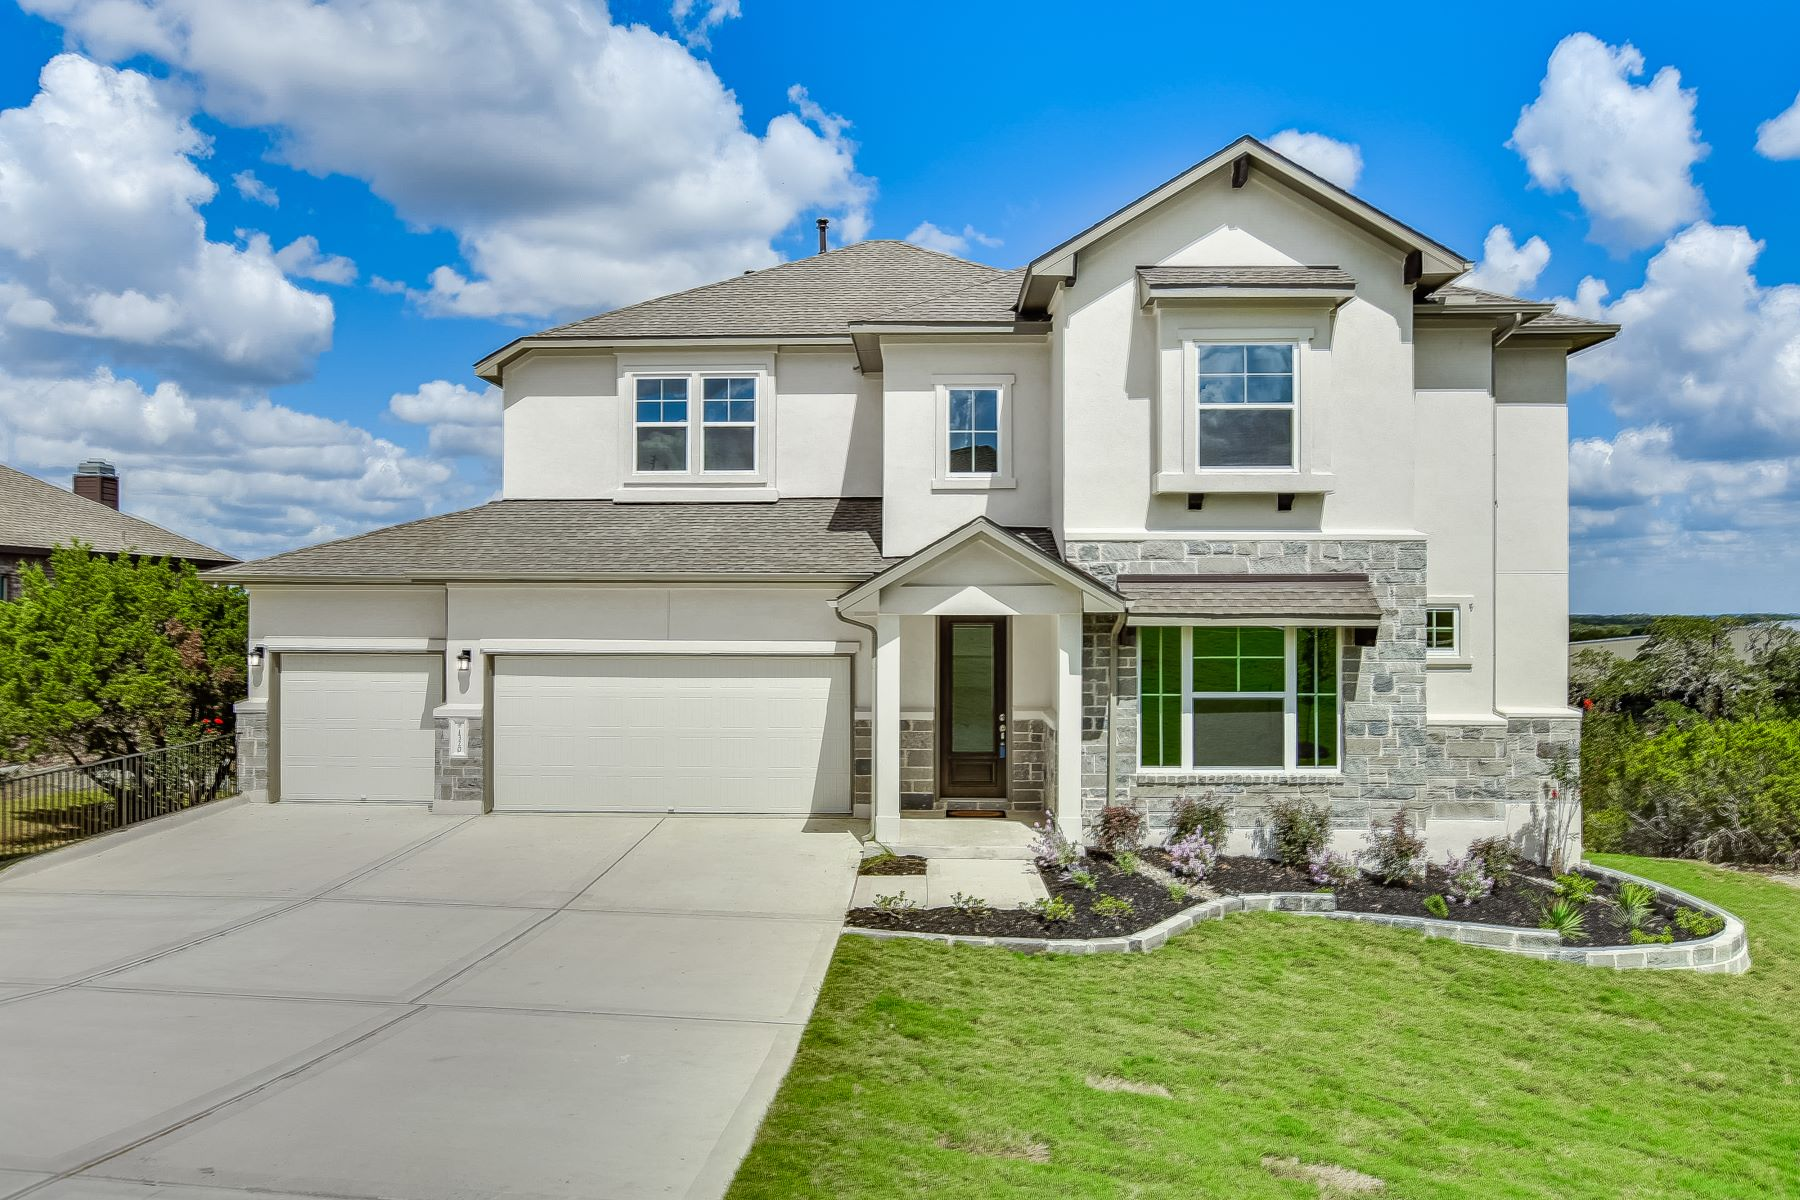 Single Family Homes for Sale at 1320 Buffalo Canyon Drive, Dripping Springs, TX 78620 1320 Buffalo Canyon Drive Dripping Springs, Texas 78620 United States